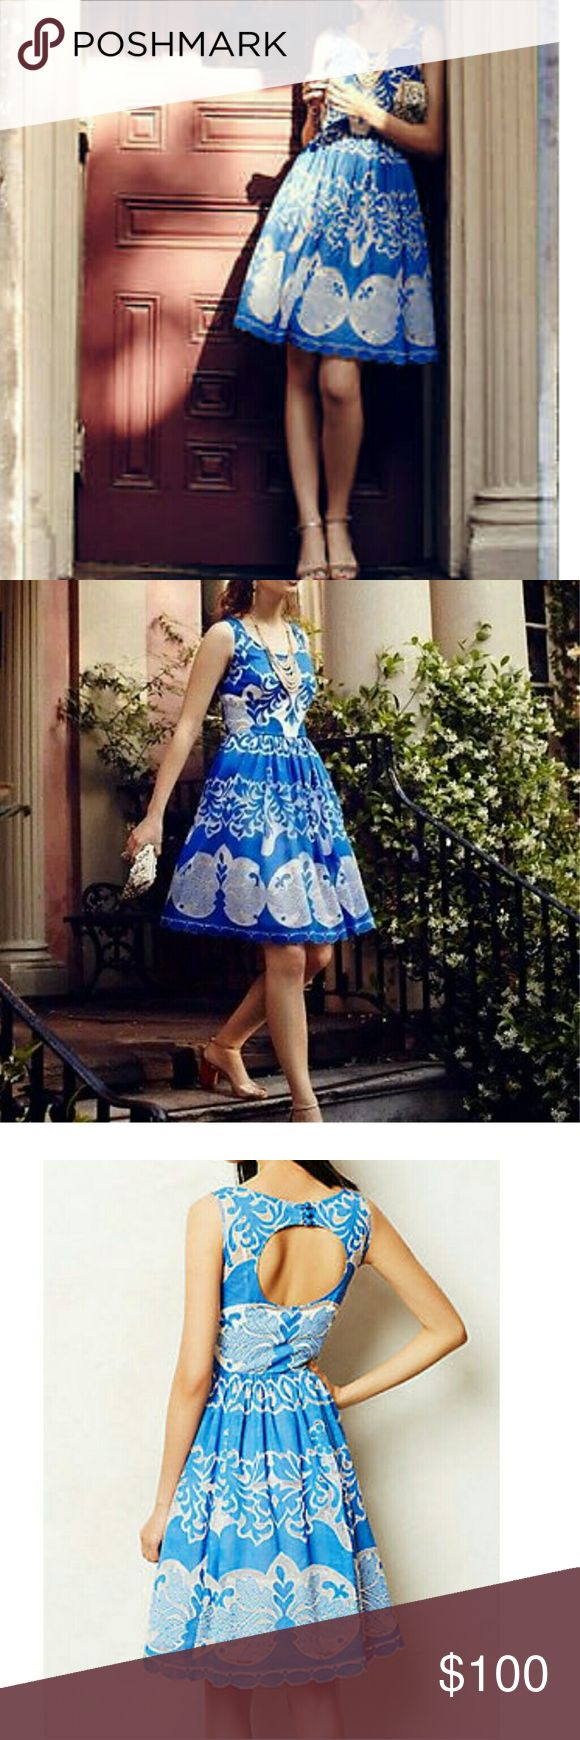 Plenty by tracy reese blue lace dress Absolutely gorgeous azure blue lace dress from Anthropologie by Tracy Reese. Pre-owned, very good condition! Tracy Reese Dresses